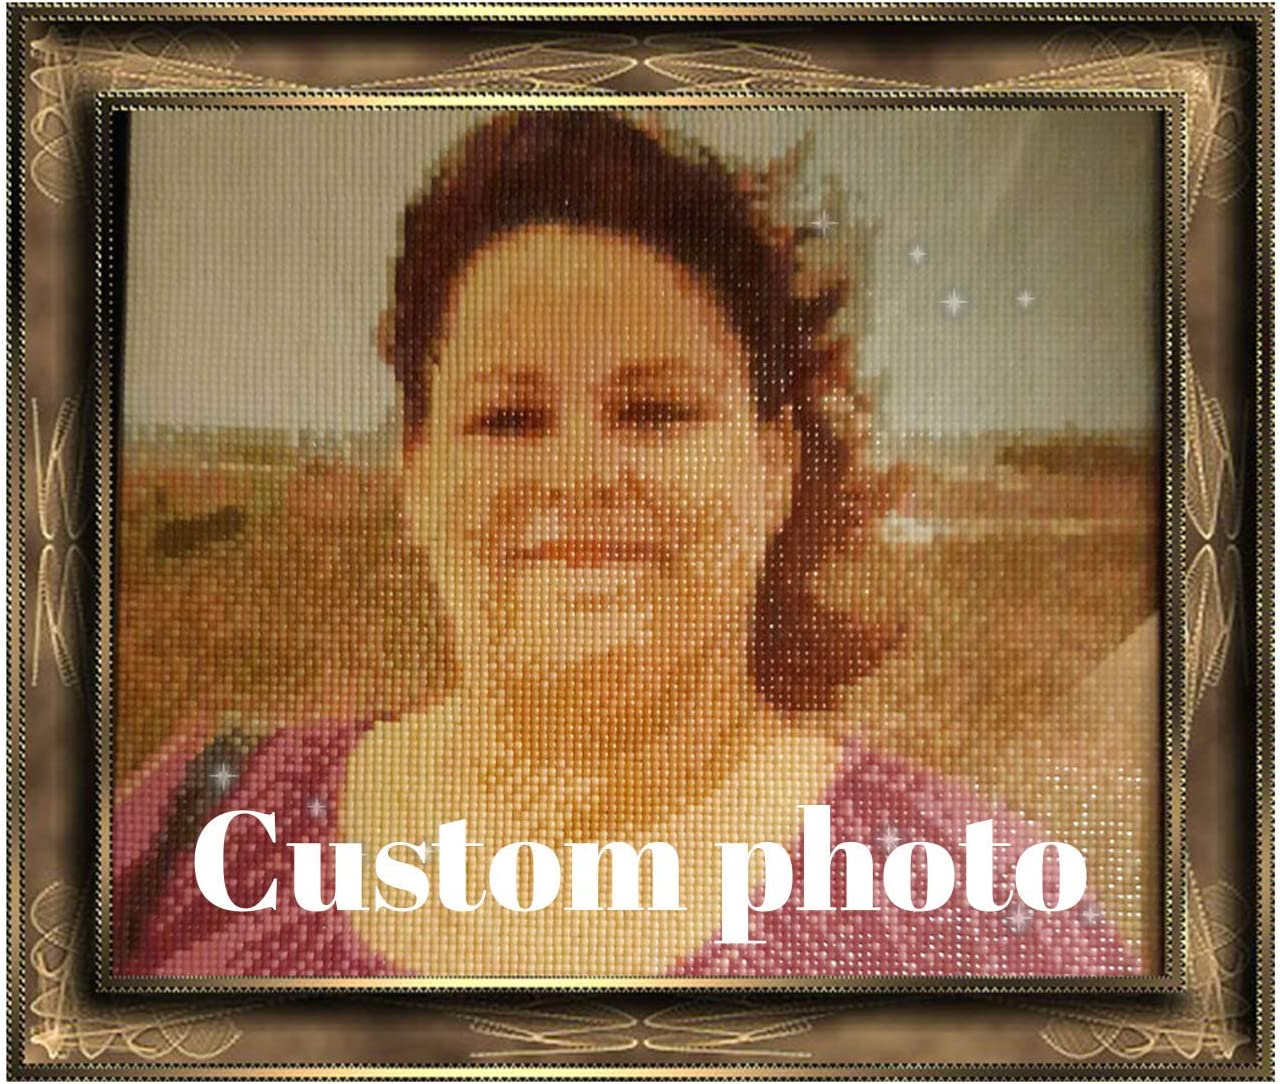 DIY Custom Direct sale of manufacturer Photo 5D Diamond Painting security for and kit Adults Accessor